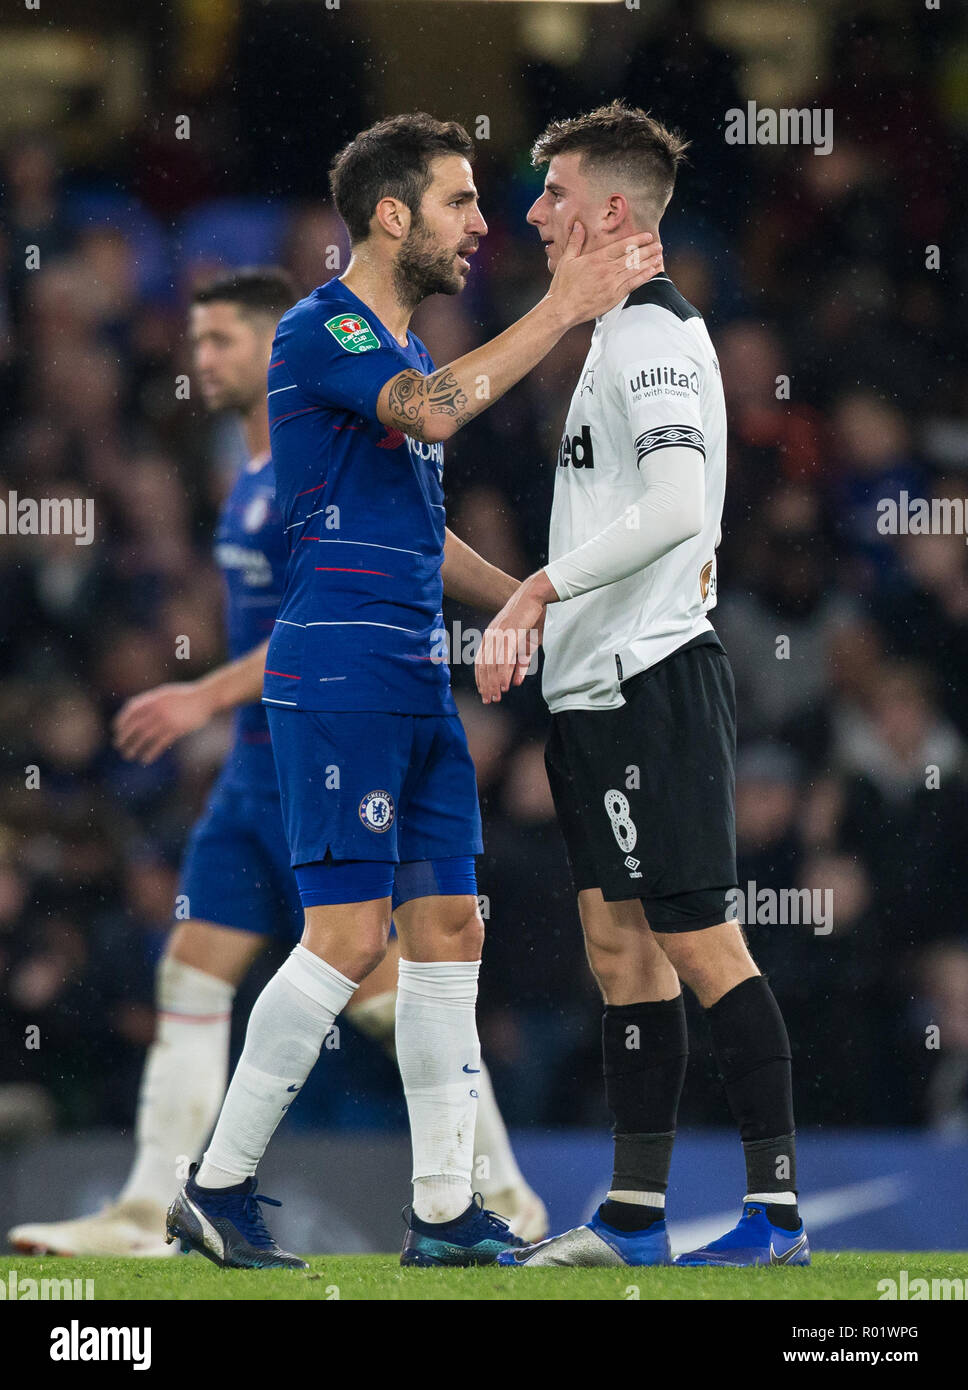 London, UK. 31st October, 2018. Mason MOUNT (on loan from Chelsea) of Derby County & Cesc Fˆbregas of Chelsea at full time during the Carabao Cup round of 16 match between Chelsea and Derby County at Stamford Bridge, London, England on 31 October 2018. Photo by Andy Rowland../Alamy Live News  - Stock Image